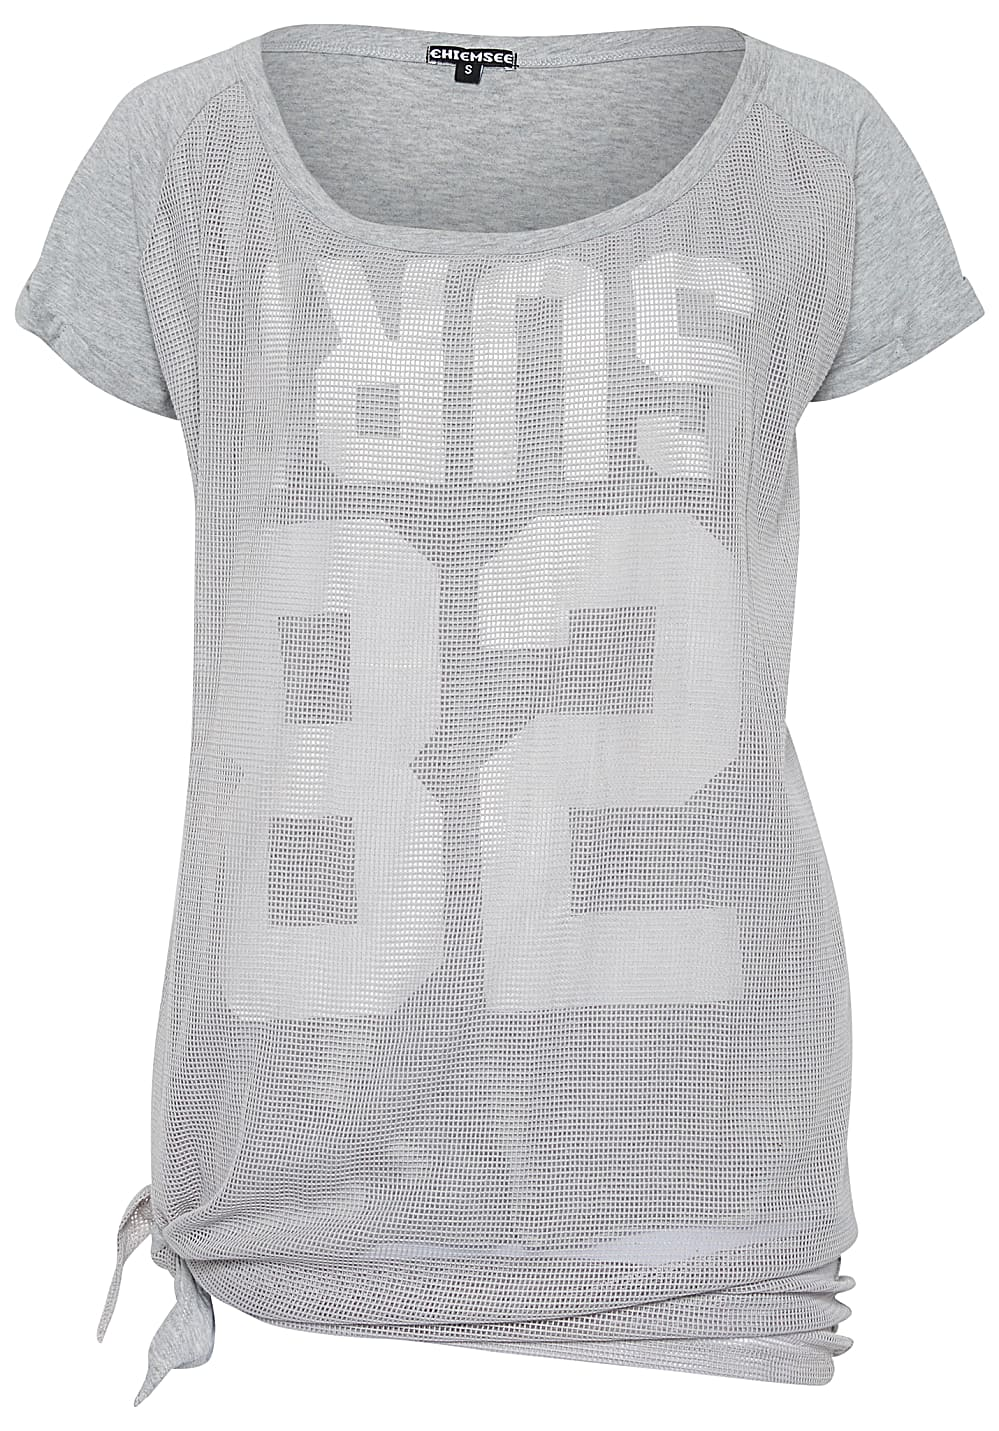 Chiemsee T Shirt Oversize For Women Grey Planet Sports Oversized Next